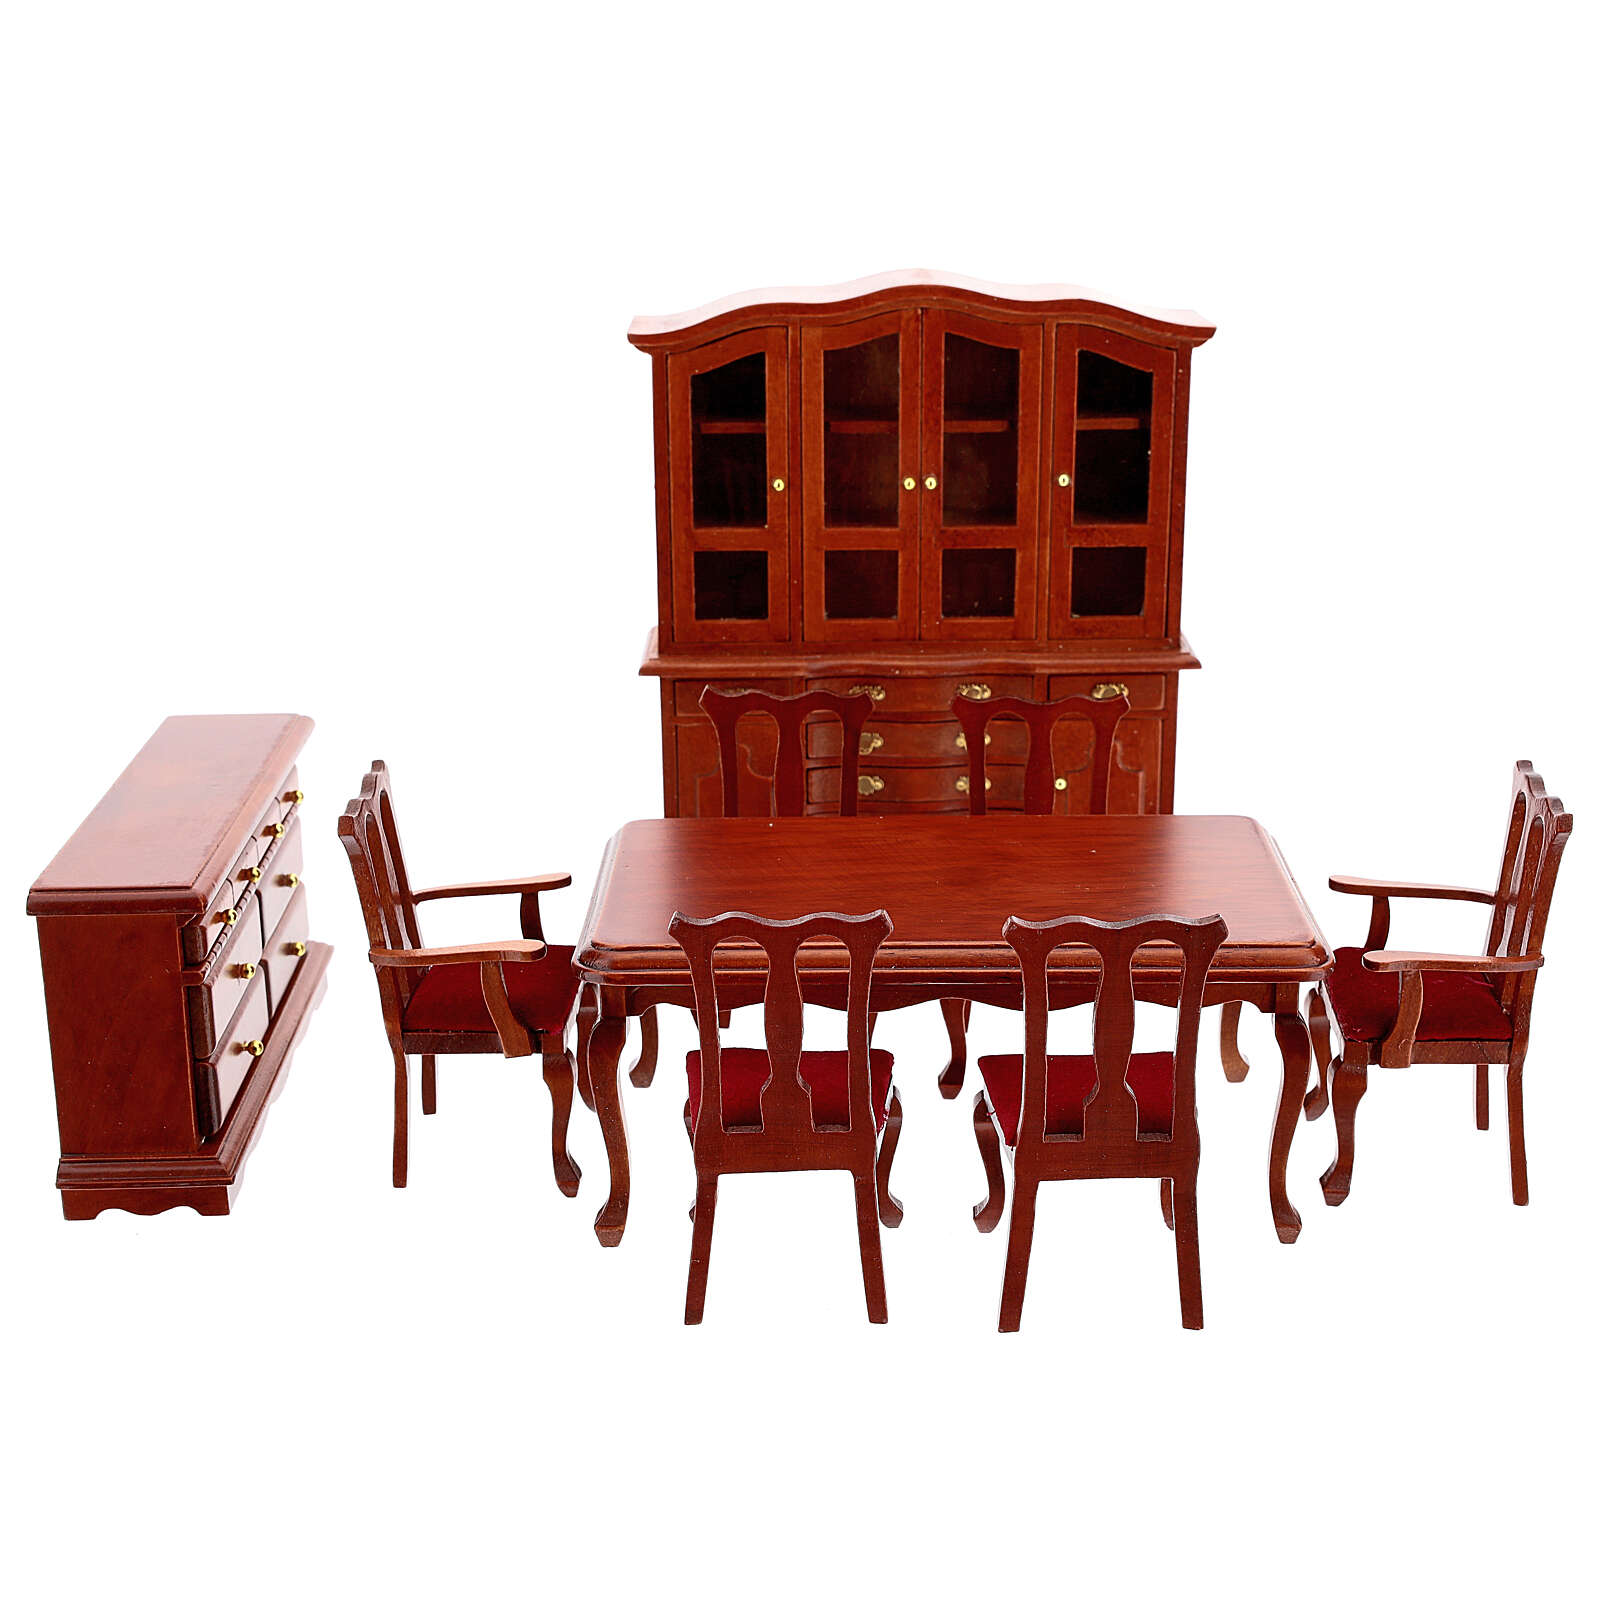 Dining room set 9 items for Nativity Scene with 12-14 cm figurines 4